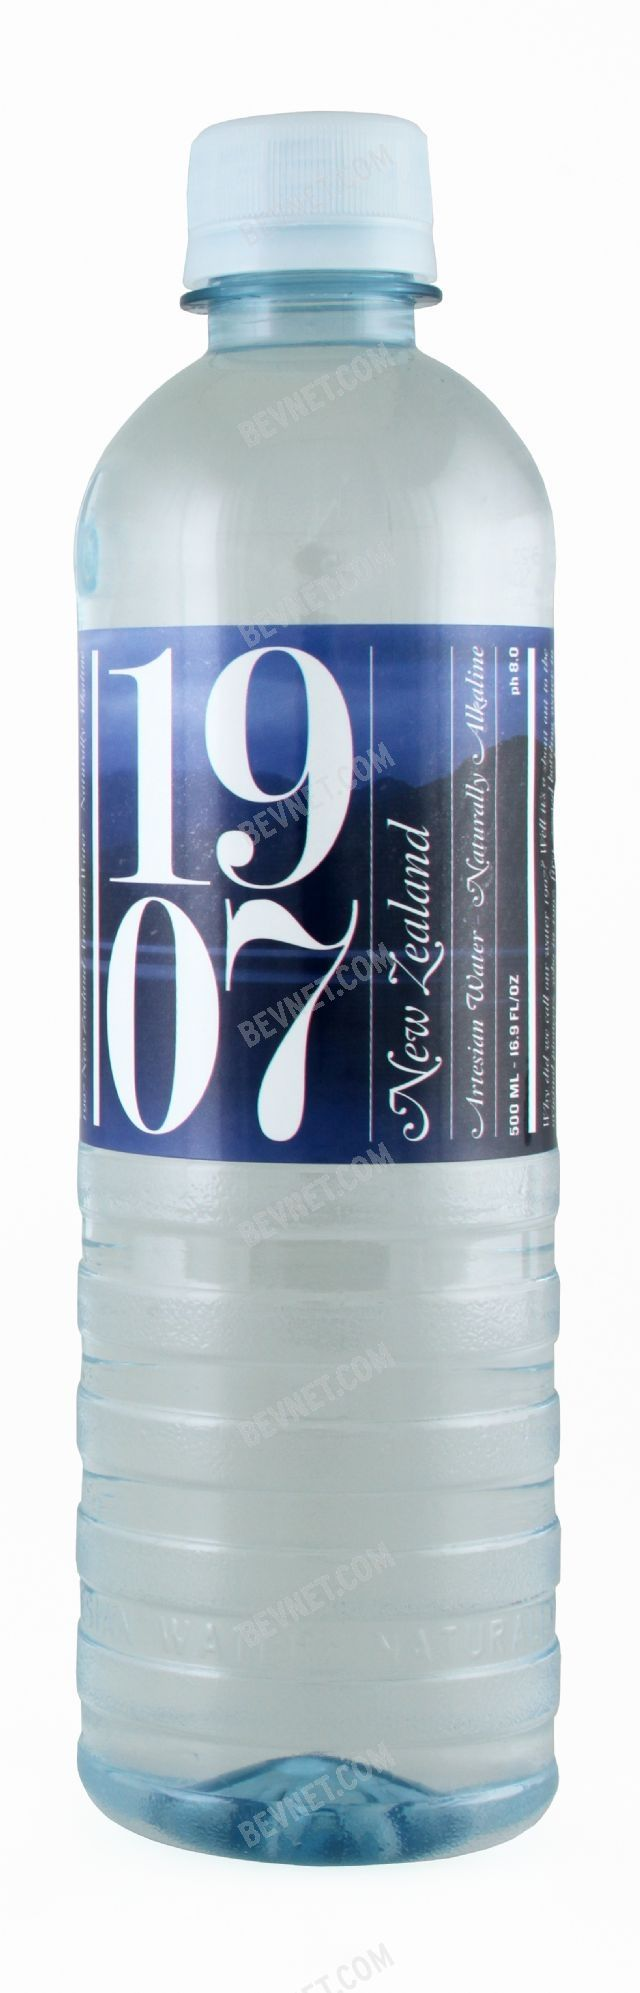 1907 New Zealand Artesian Water: